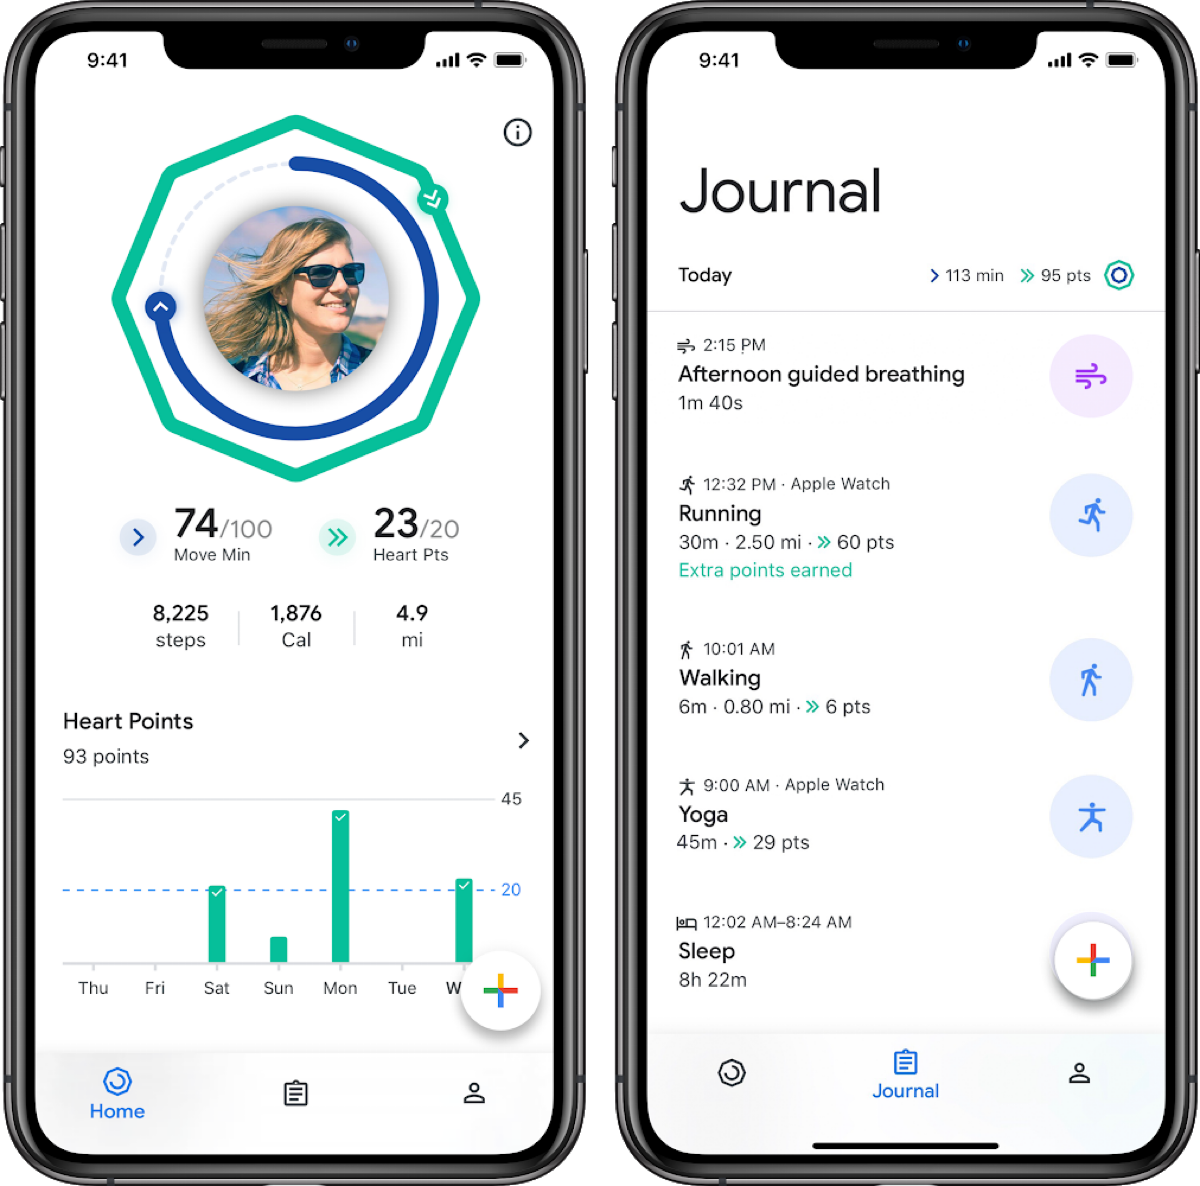 Screenshots of google fit iOS app